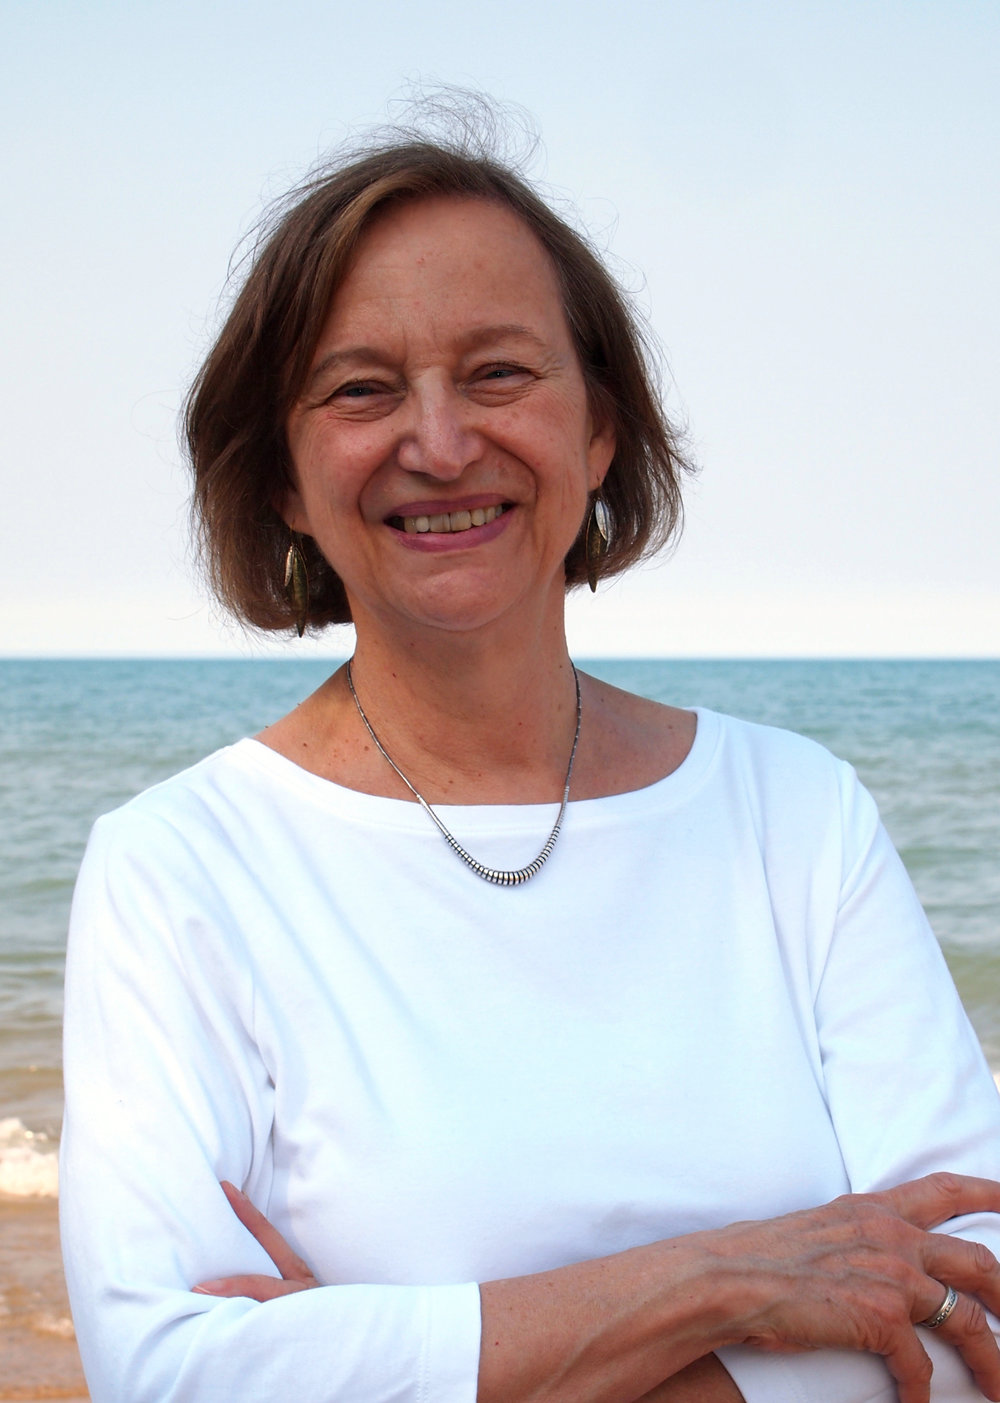 Patricia Skalka - Patricia Skalka won the Edna Ferber Fiction Award from the Council for Wisconsin Writers for Death in Cold Water, the third of her Dave Cubiak Door County Mysteries. The series began with Death Stalks Door County, and continued with Death at Gills Rock, and, most recently, Death Rides the Ferry.A former Reader's Digest staff writer, Skalka is also the author of several nonfiction books. She is a member of The Authors Guild, Mystery Writers of America, Wisconsin Writers Association, and Society of Midland Authors. She lives in Chicago and Door County.www.patriciaskalka.com>> ATTEND HER EVENT AT THE FESTIVAL <<